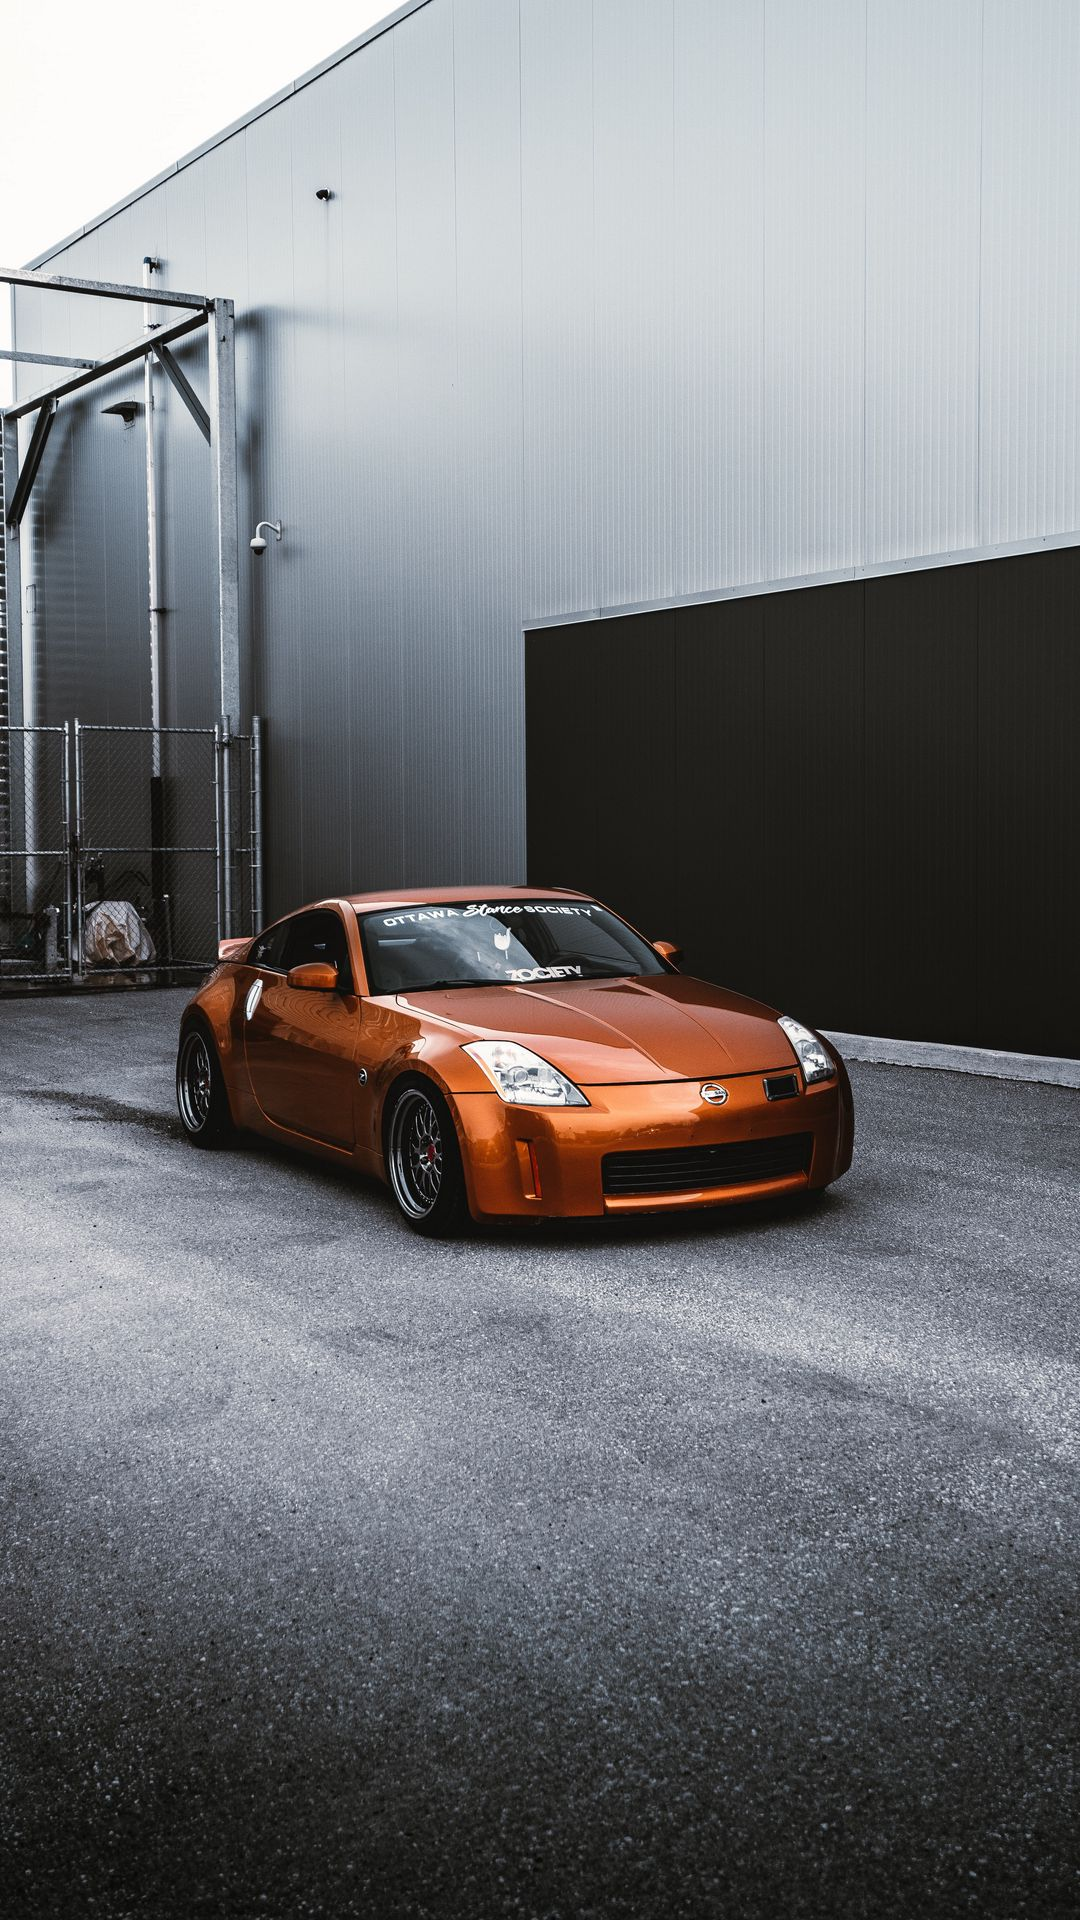 Nissan 350z Sports Car Wallpapers Free Download for Phone & iOS